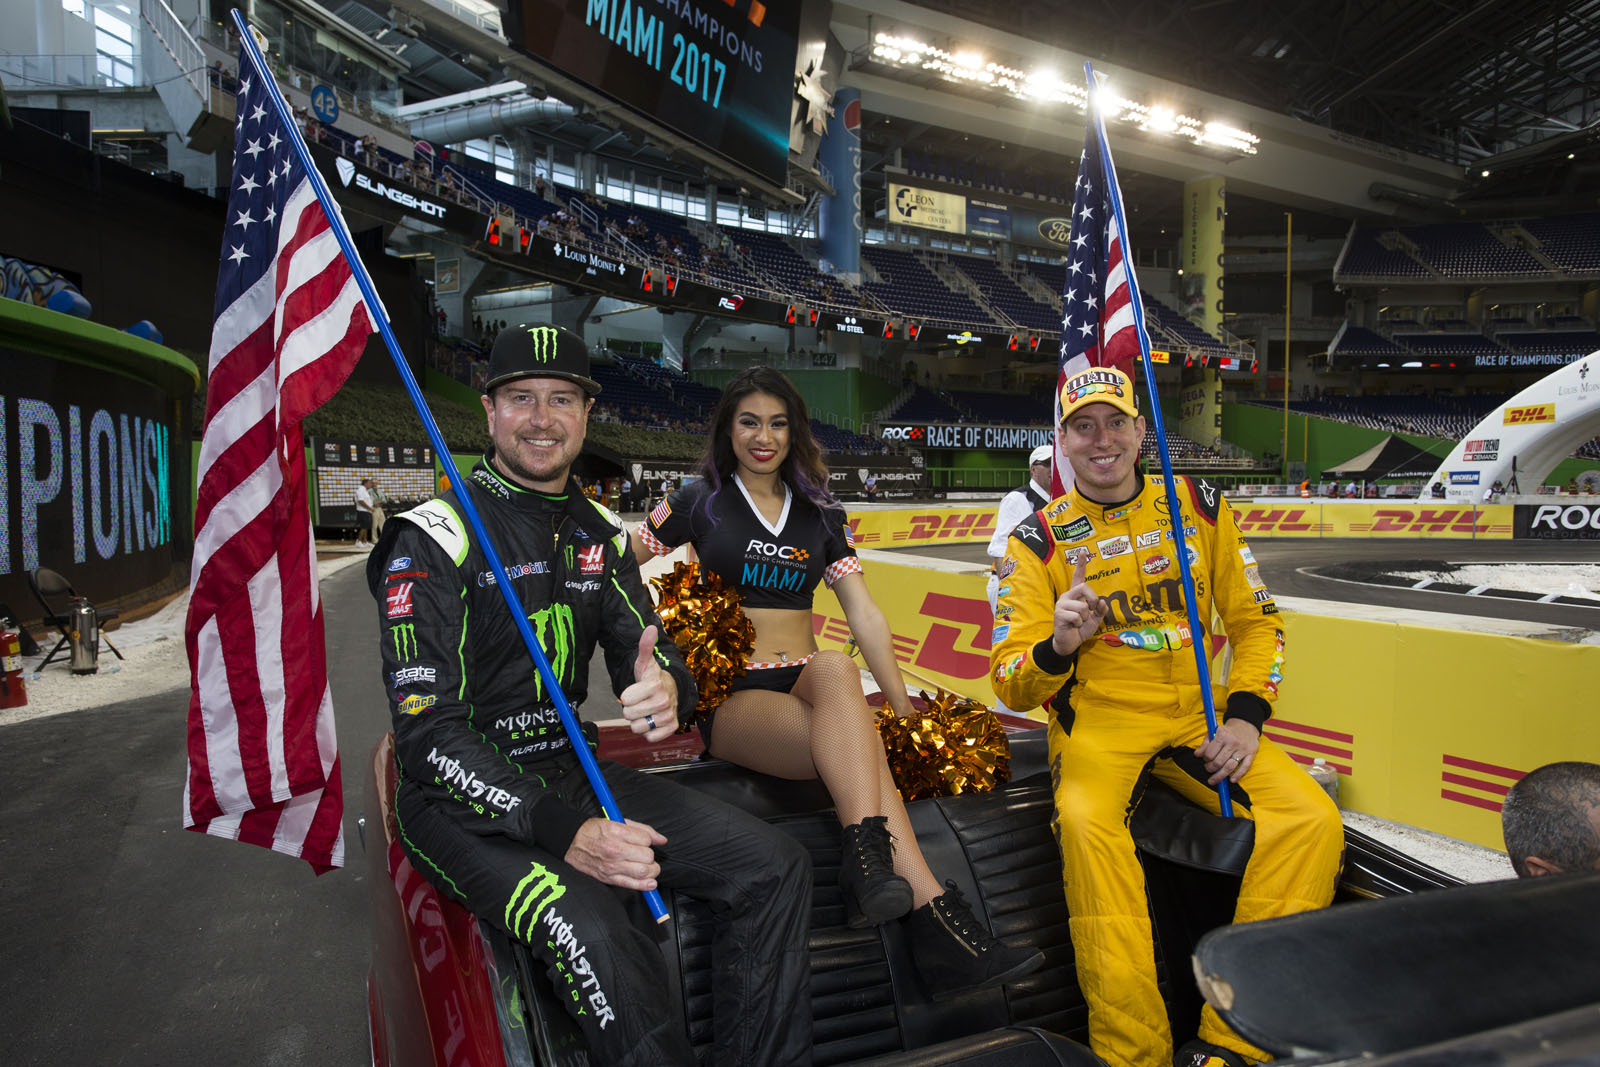 Team USA NASCAR Kurt Busch (USA) and Kyle Busch (USA) during the ROC Nations Cup on Sunday 22 January 2017 at Marlins Park, Miami, Florida, USA